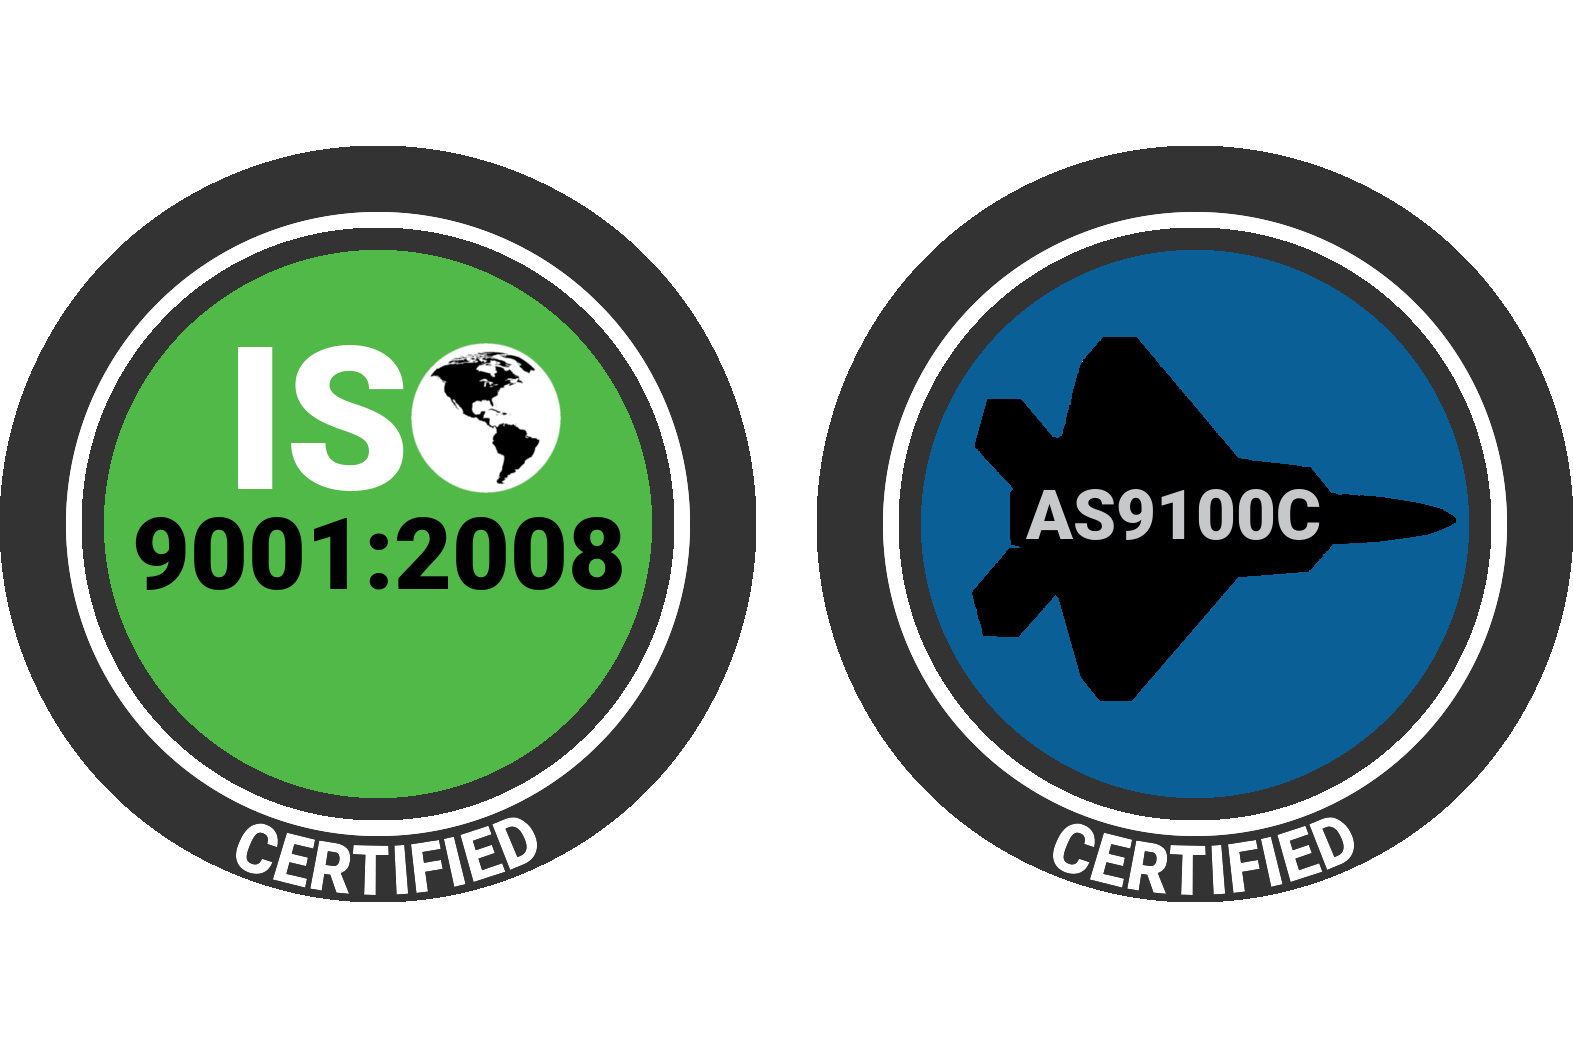 ISO9001:2008 & AS9100C Certified